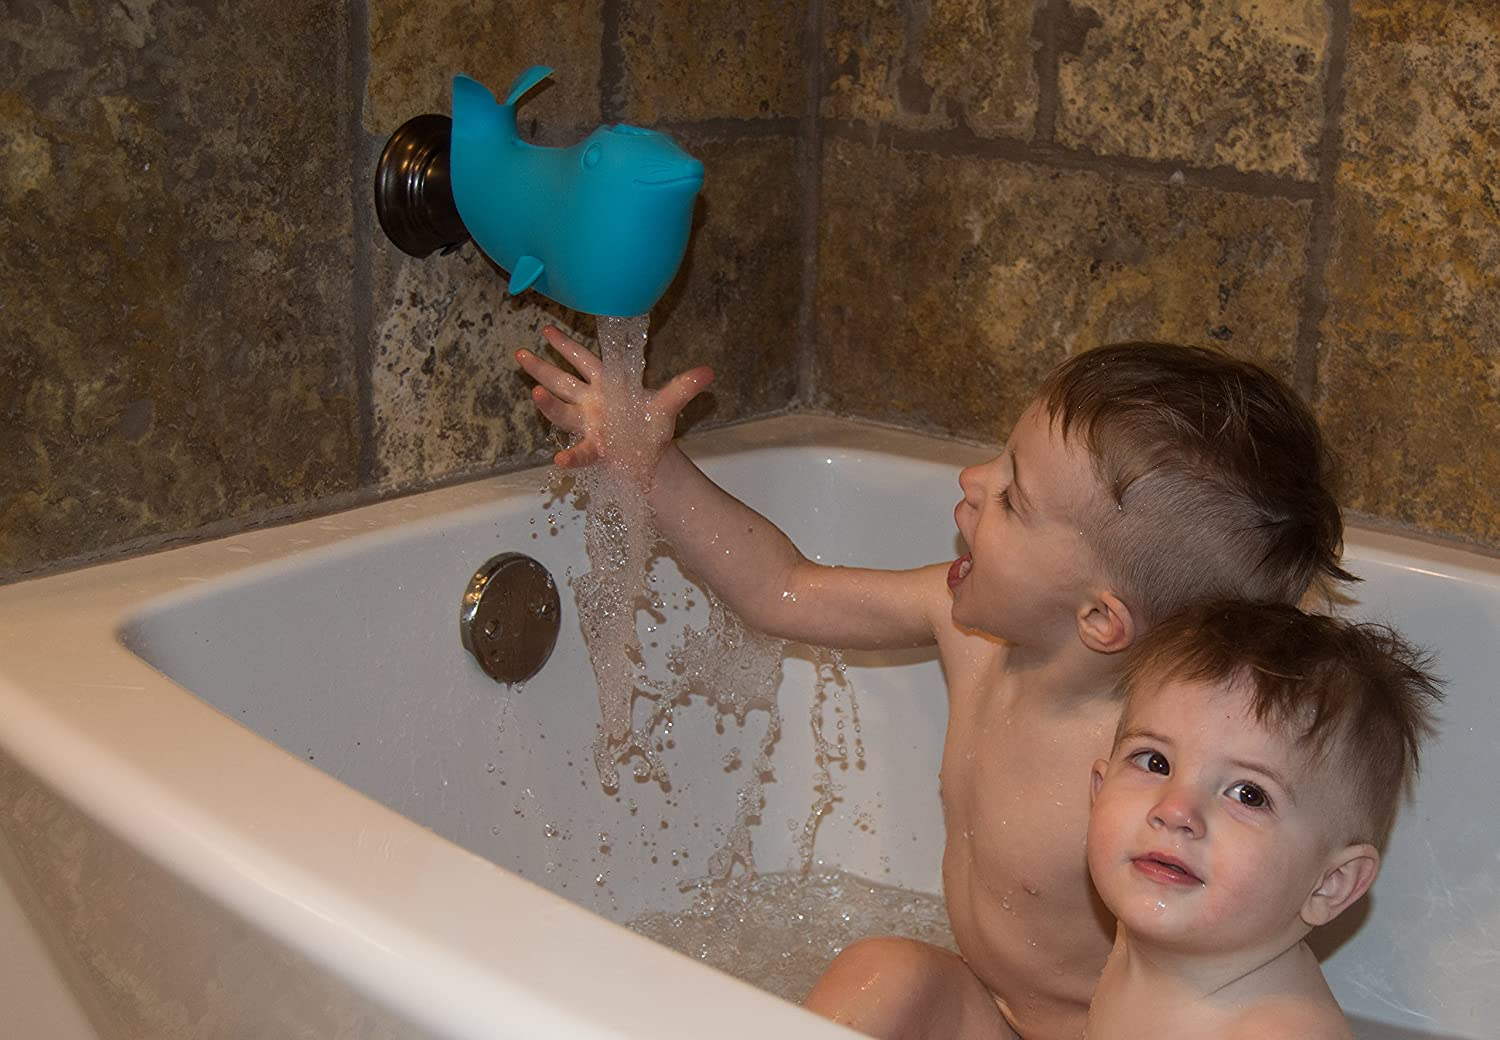 Amazon.com: Tiddler Bath Spout Cover (Blue): Health & Personal Care